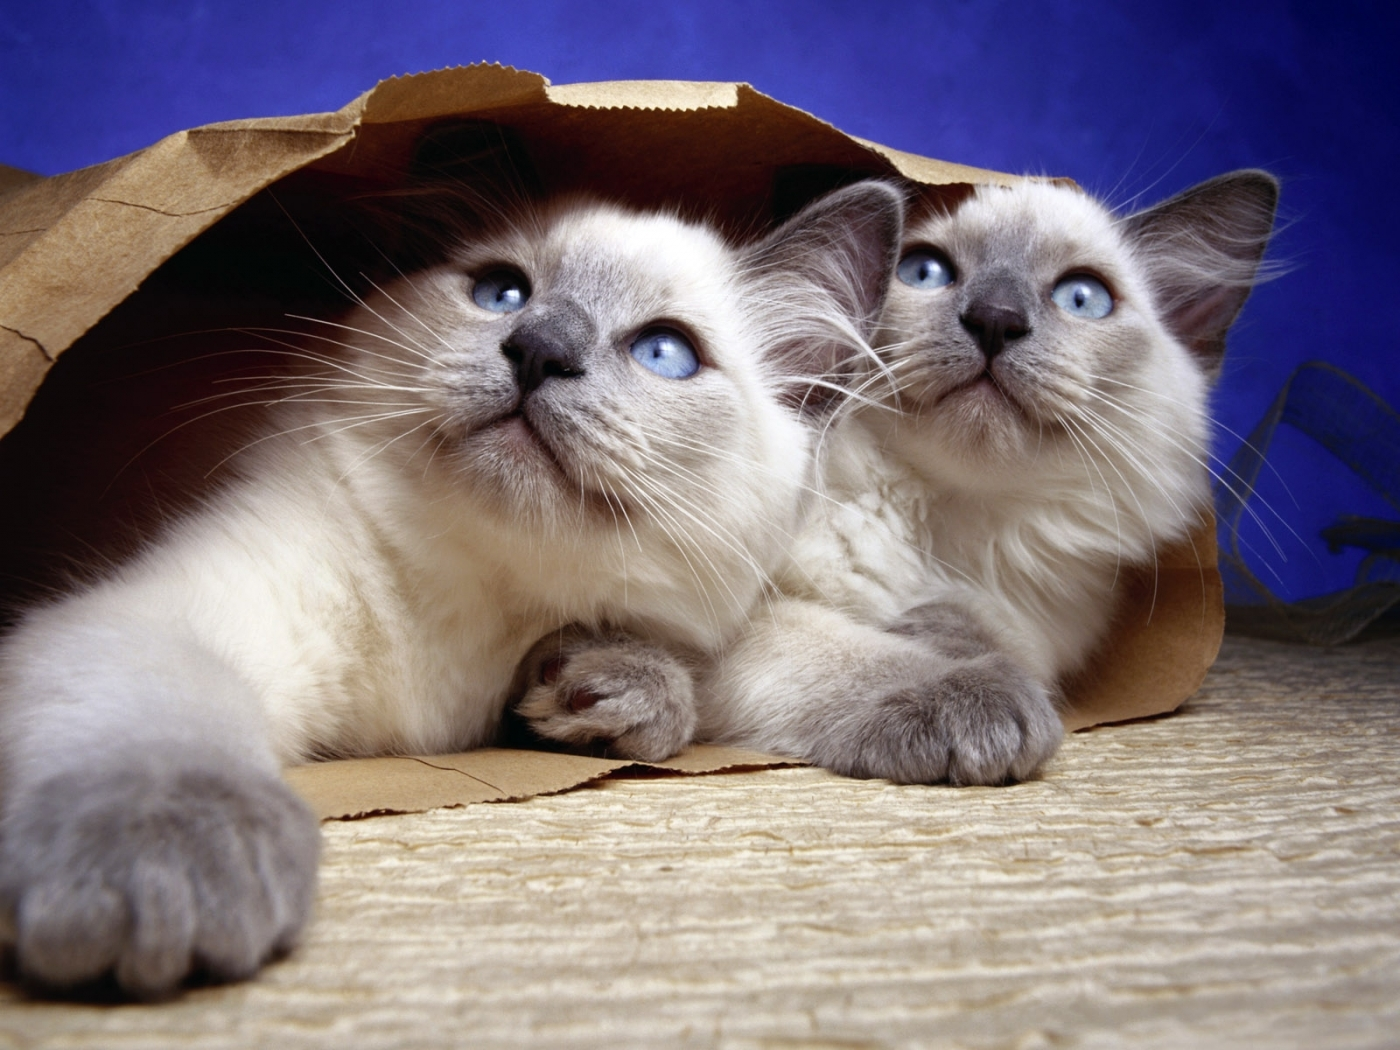 49835 download wallpaper Animals, Cats screensavers and pictures for free